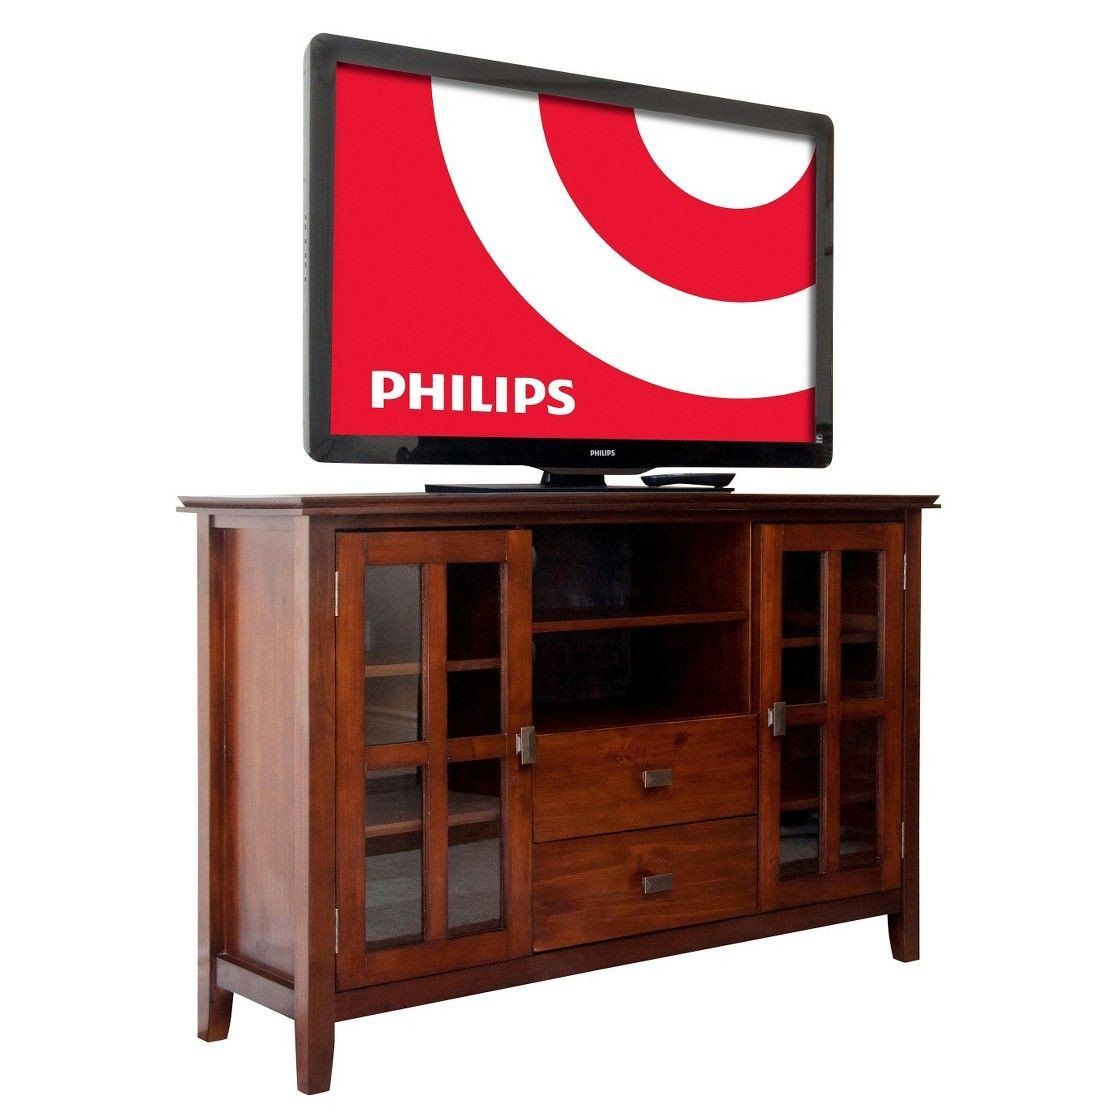 Tall Tv Stands for Bedroom Beautiful Stratford solid Wood Tall Tv Media Stand Medium Auburn Brown